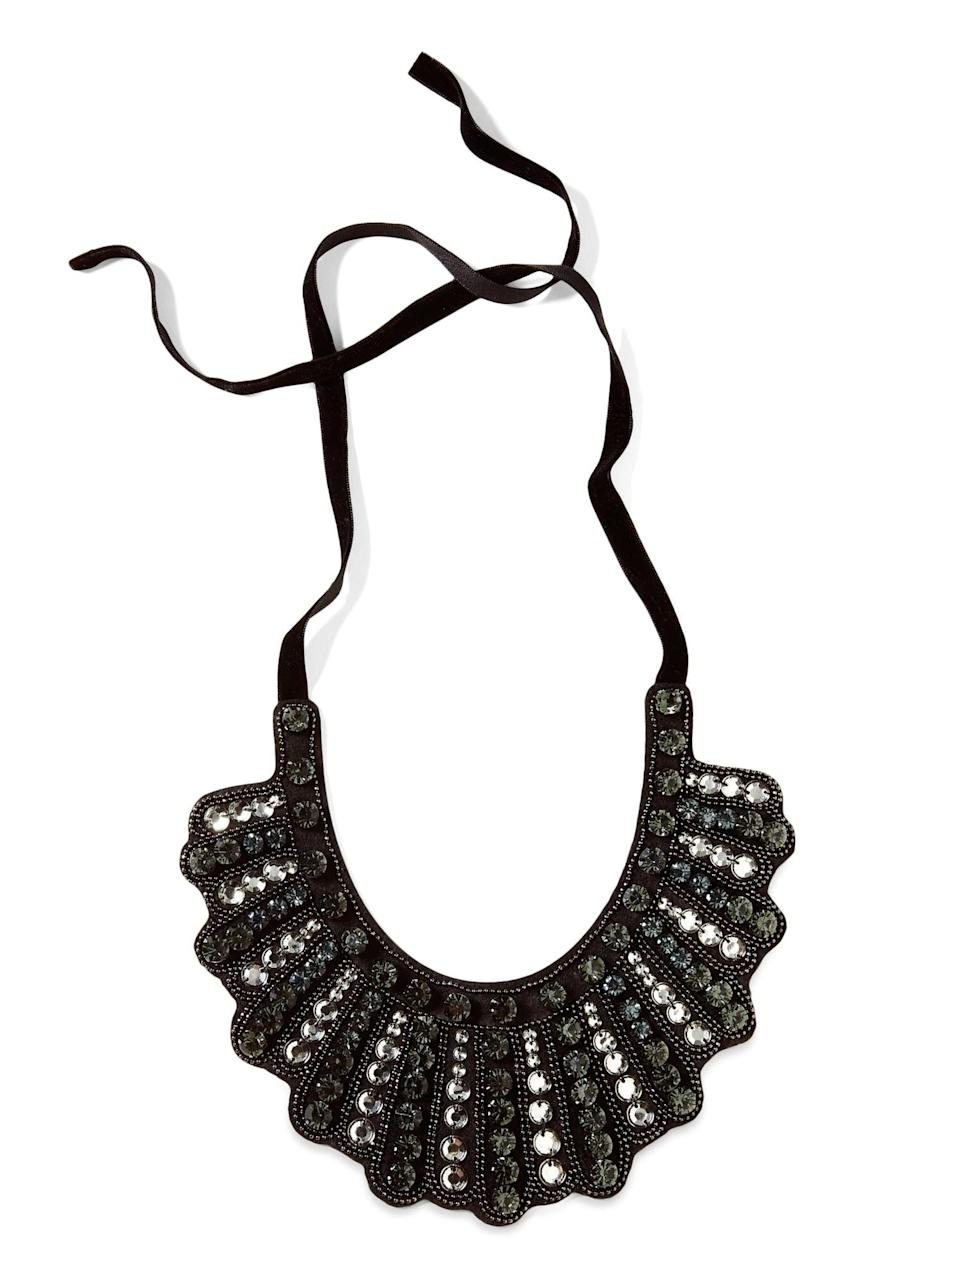 """<p>Is she the kind of woman who always sets the bar? This <span>Banana Republic Notorious Necklace</span> ($98) <a href=""""https://www.popsugar.com/fashion/banana-republic-notorious-necklace-47955584"""" class=""""link rapid-noclick-resp"""" rel=""""nofollow noopener"""" target=""""_blank"""" data-ylk=""""slk:re-released in honor of the late justice Ruth Bader-Ginsburg"""">re-released in honor of the late justice Ruth Bader-Ginsburg</a> would be a gift she'll appreciate and cherish.</p>"""